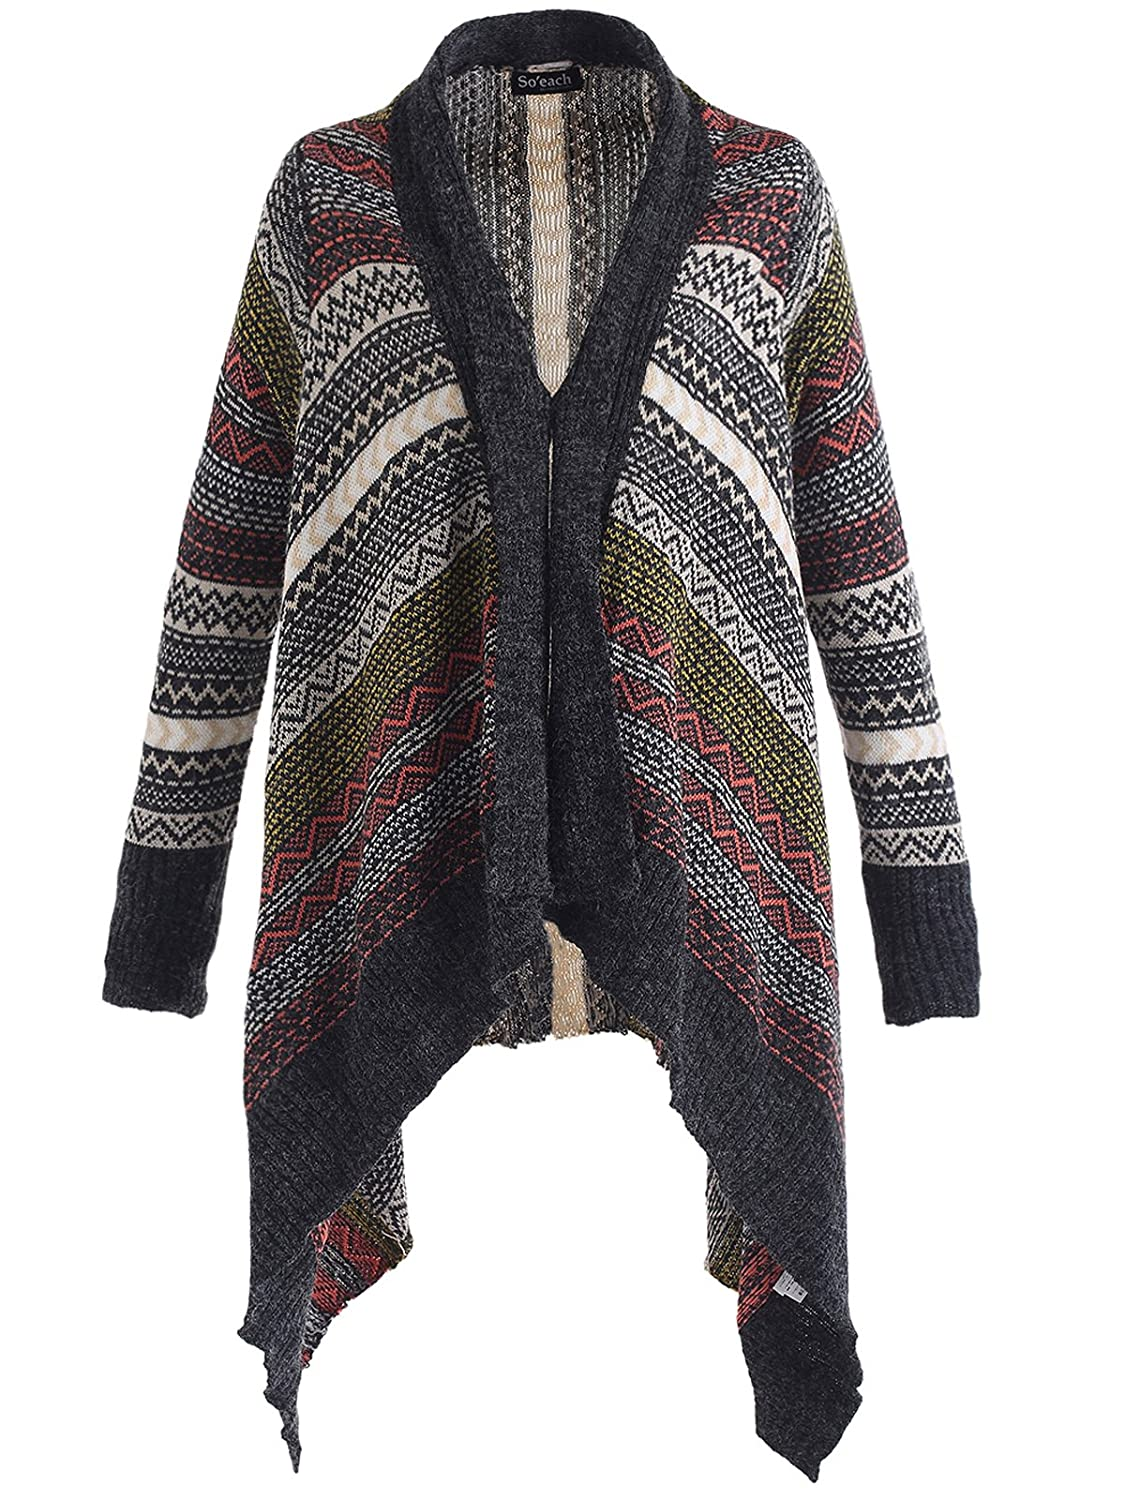 Find this Pin and more on Tribal Sweaters by Linda Paslay. Tribal cardigan- Old Navy tribal print, so cute! shoes and pants blend in. tucked in shirt, belt. Except with brown leather boots site with super cute sweaters, cheap too! Tons of Tribal Sweaters are here!!! See more.